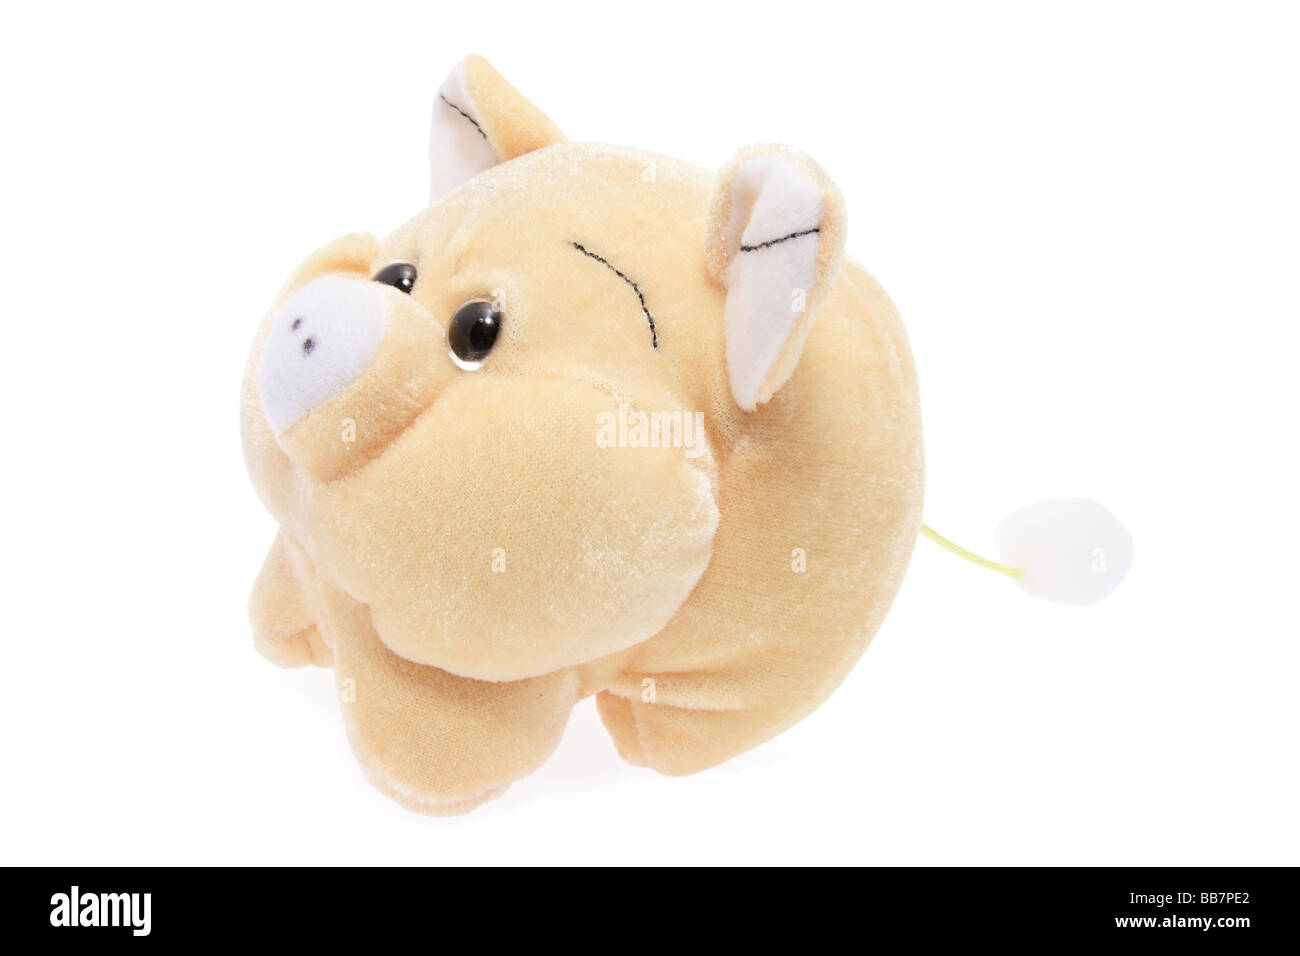 Soft Toy Pig - Stock Image